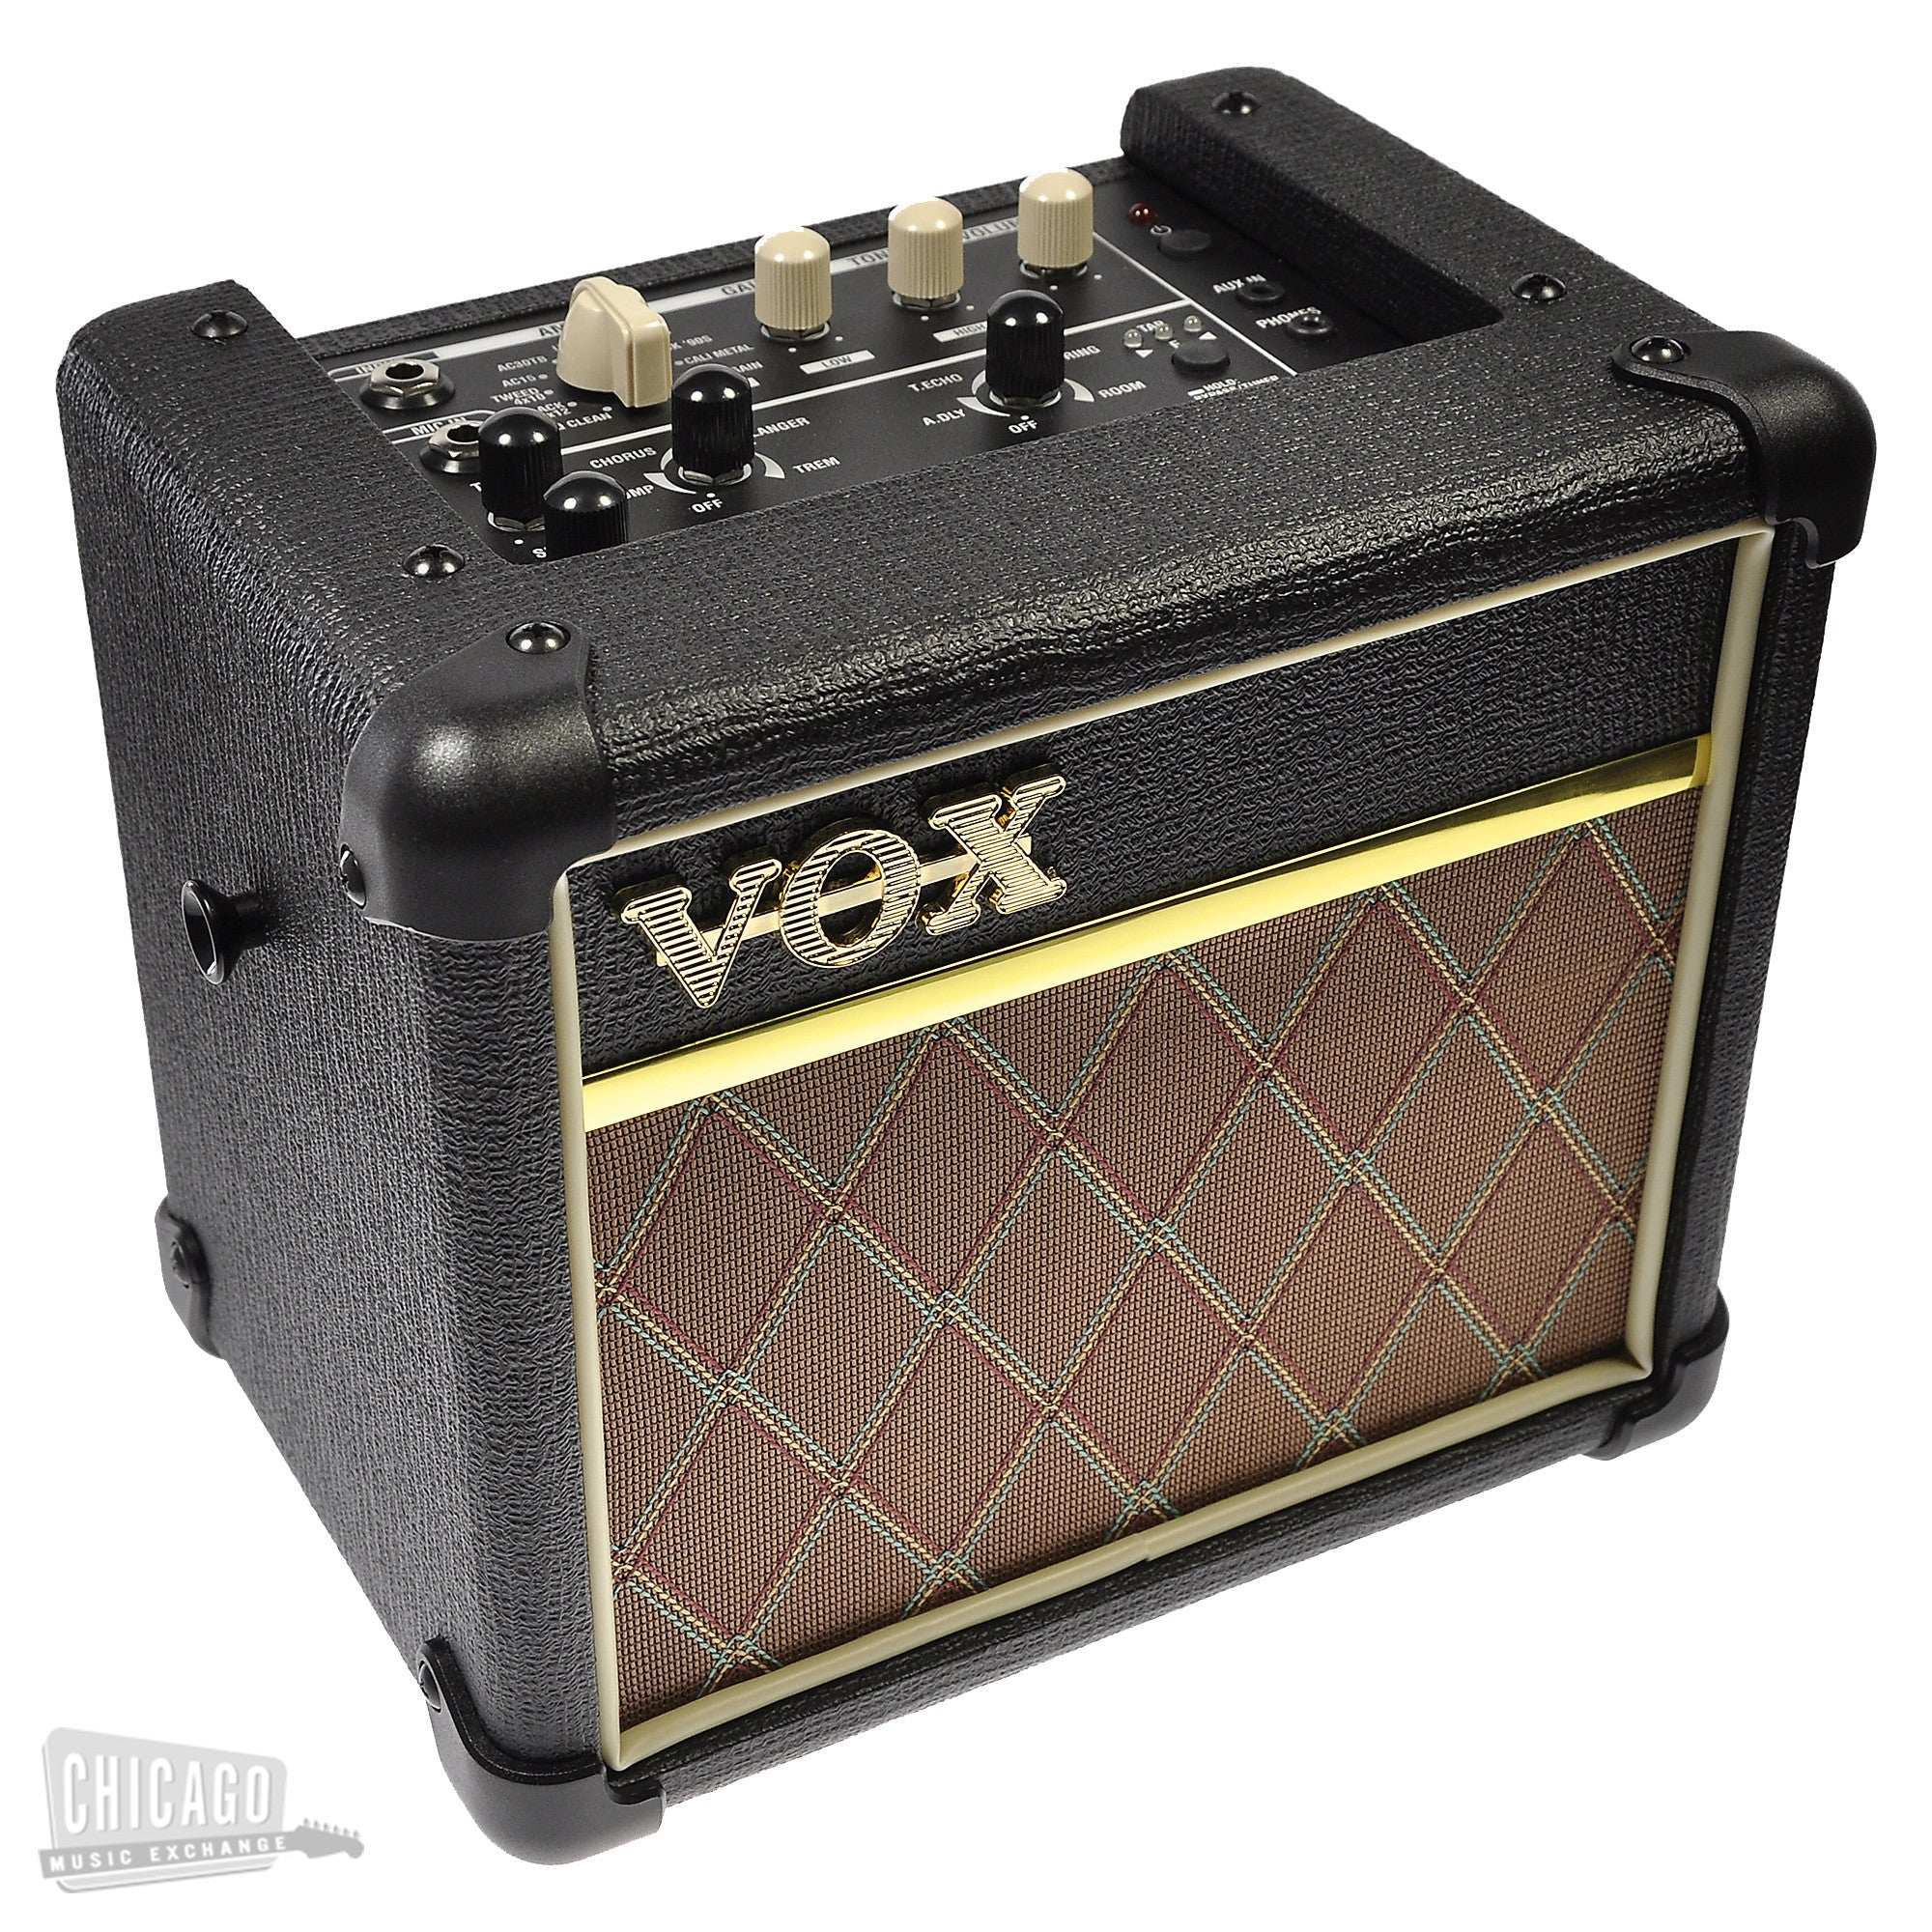 vox mini 3 g2 modeling battery powered combo classic chicago music exchange. Black Bedroom Furniture Sets. Home Design Ideas